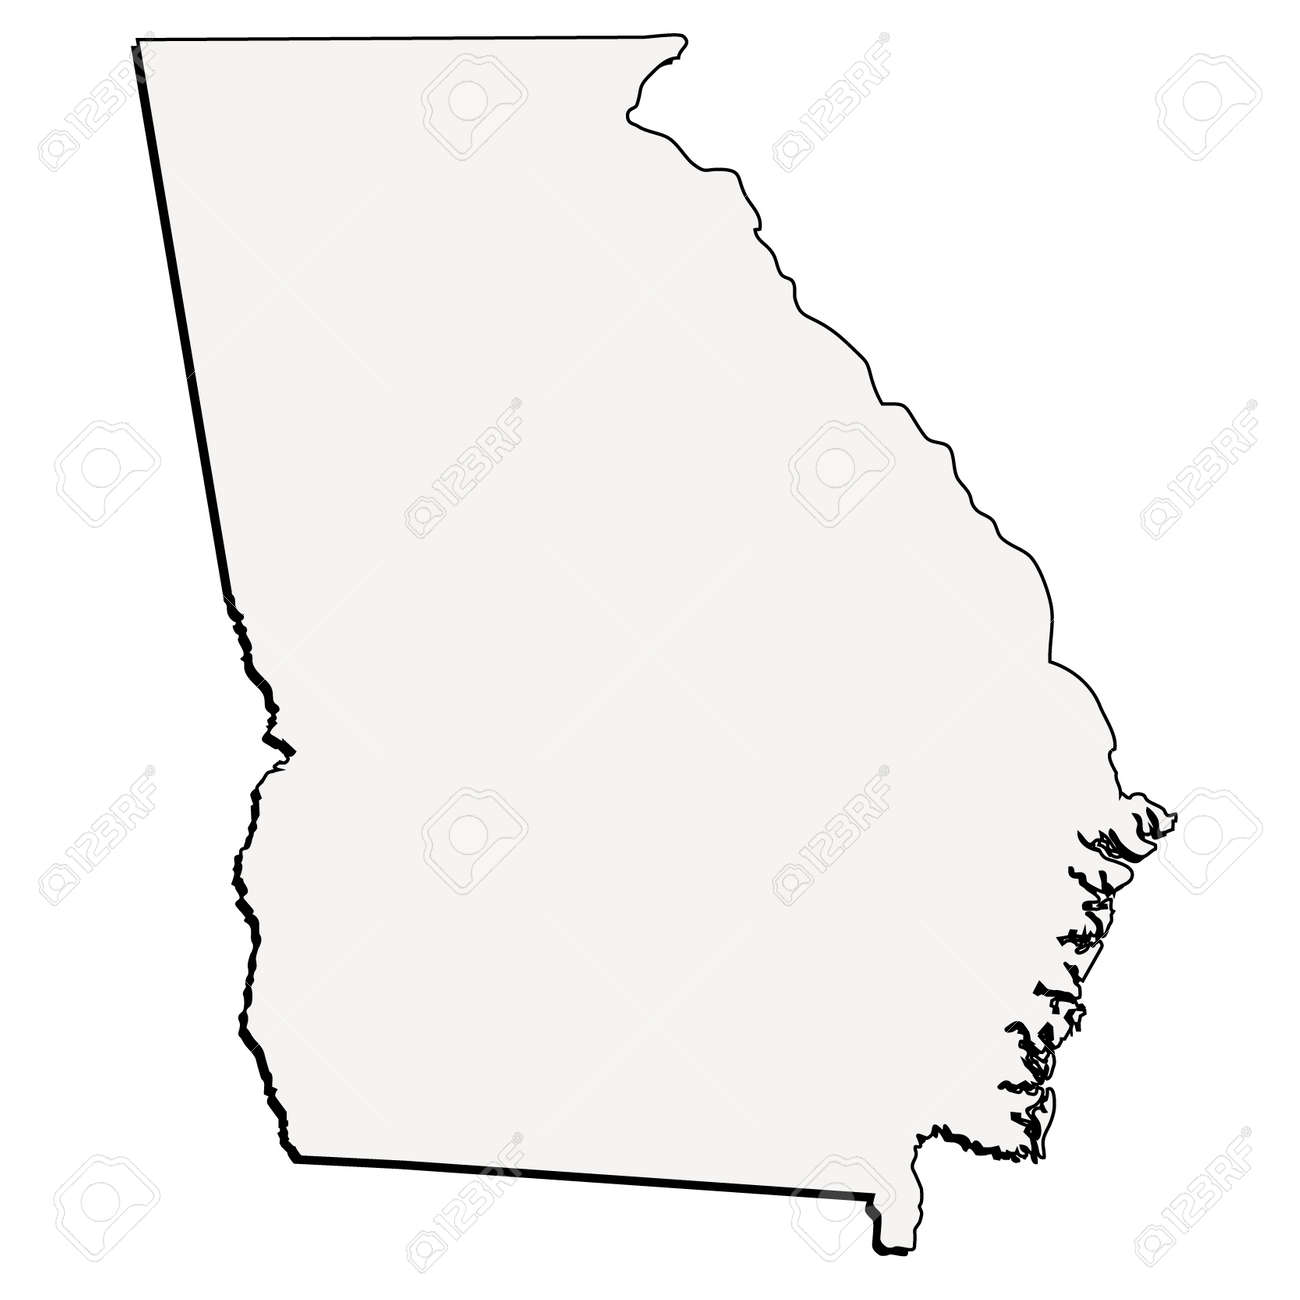 Outline Of Georgia Map.Vector Georgia State 3d Outline Map